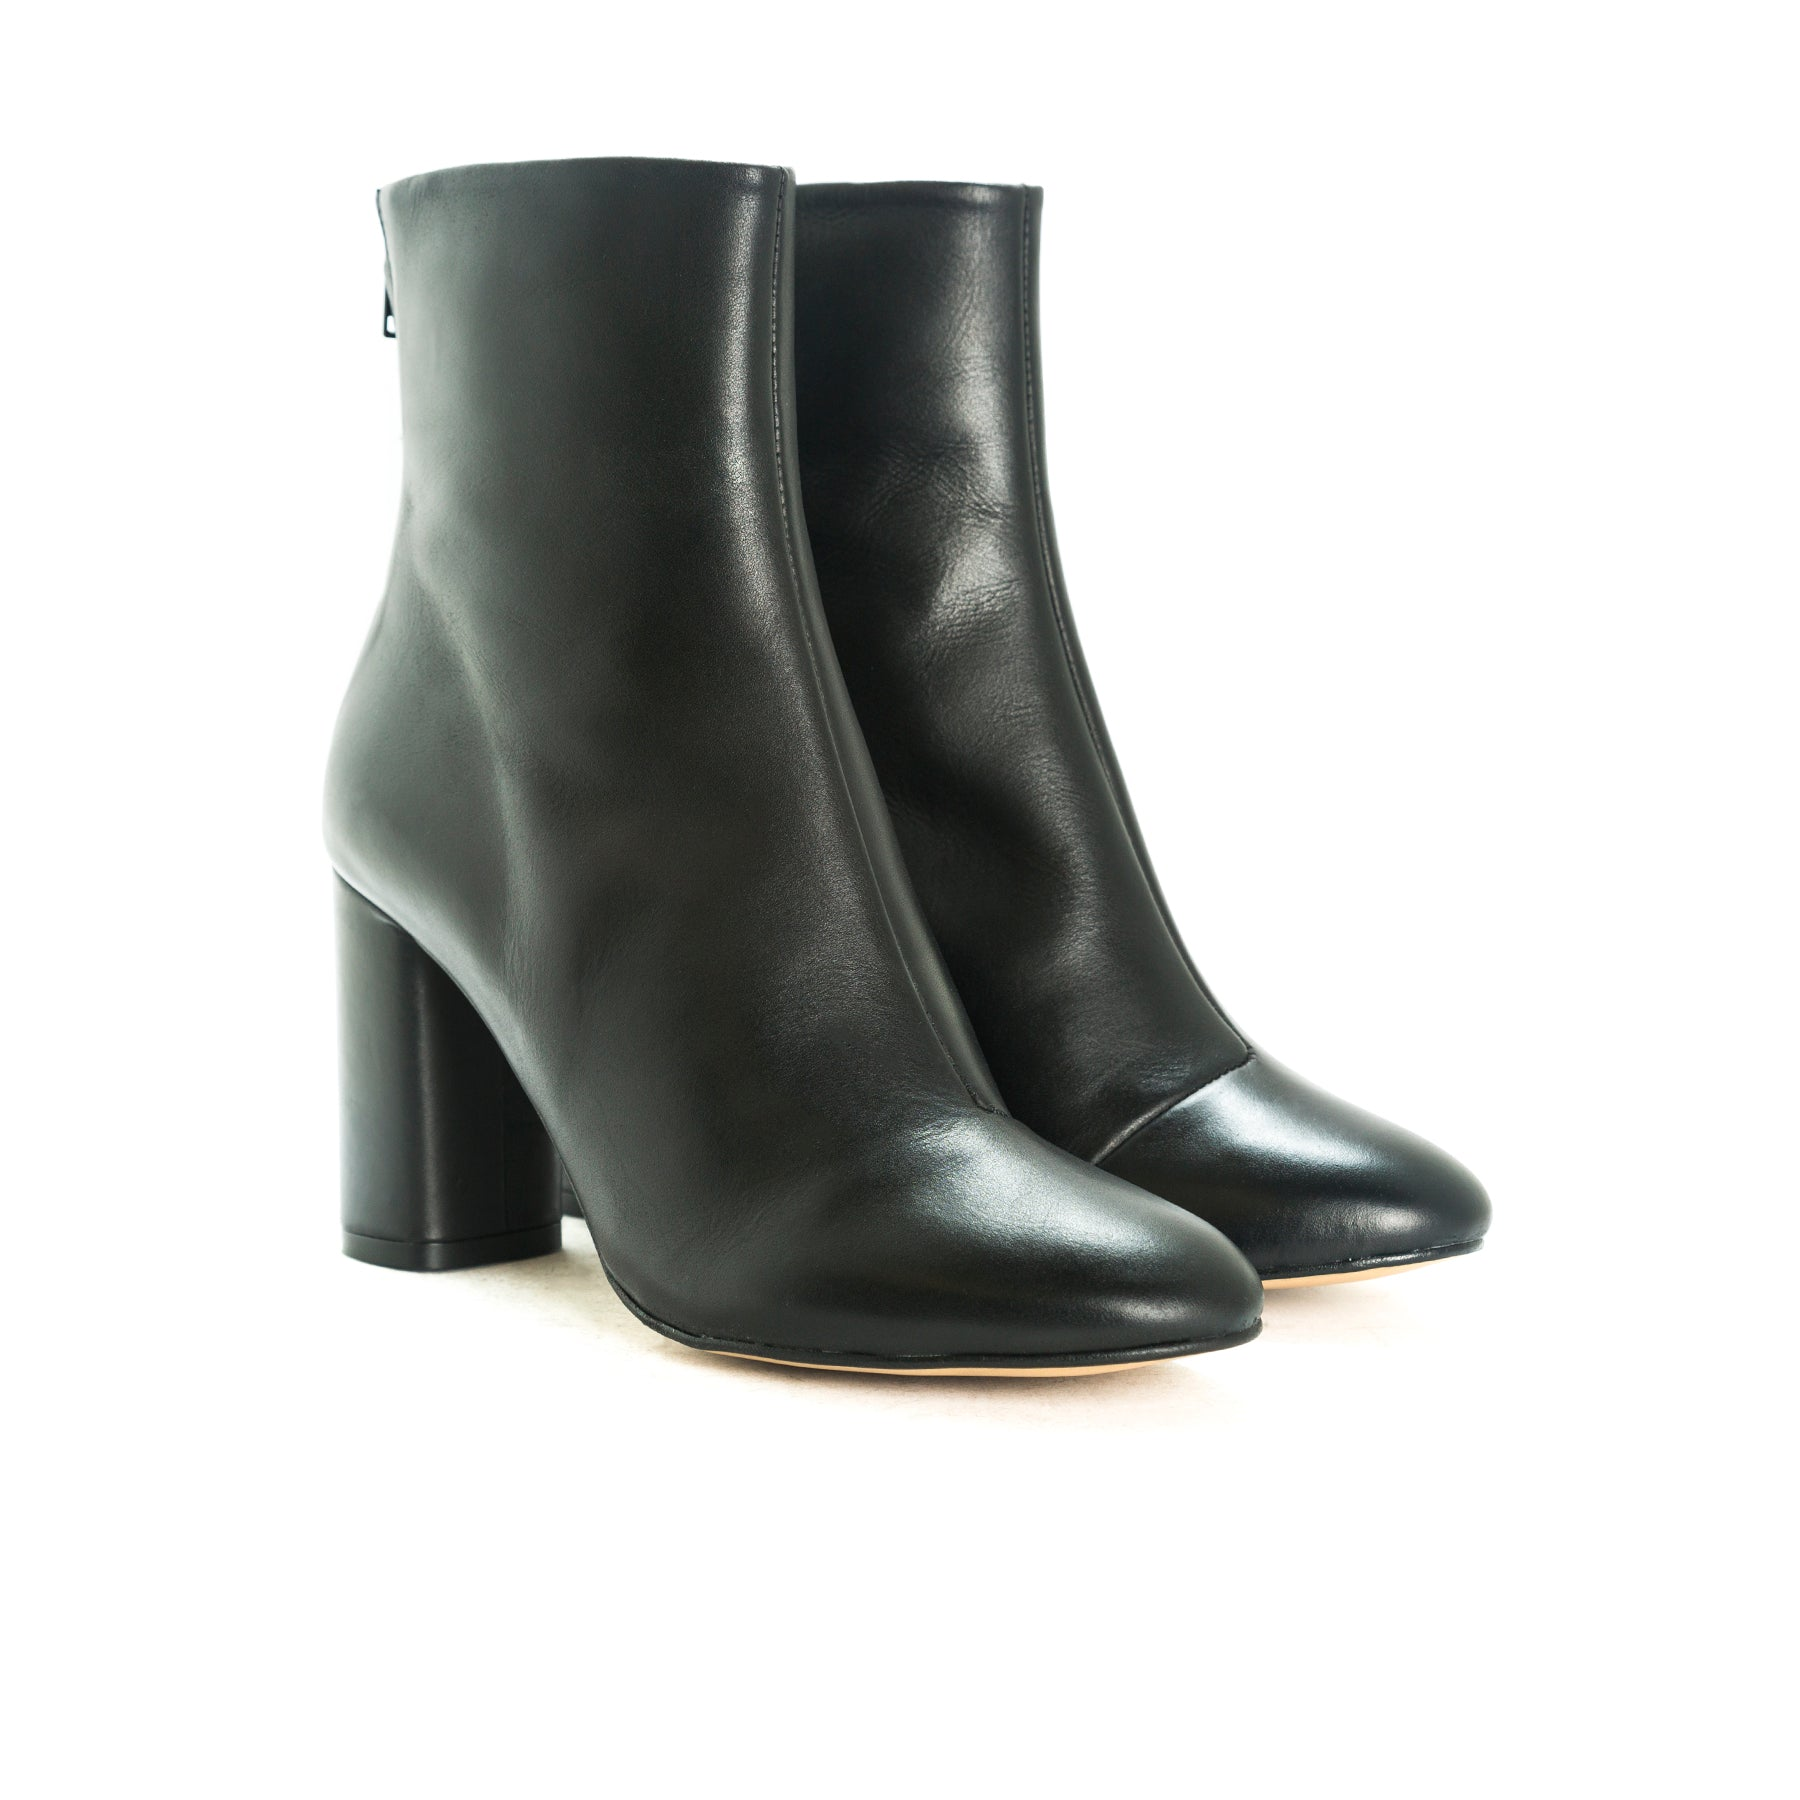 Mirta 2 Black Leather Boots